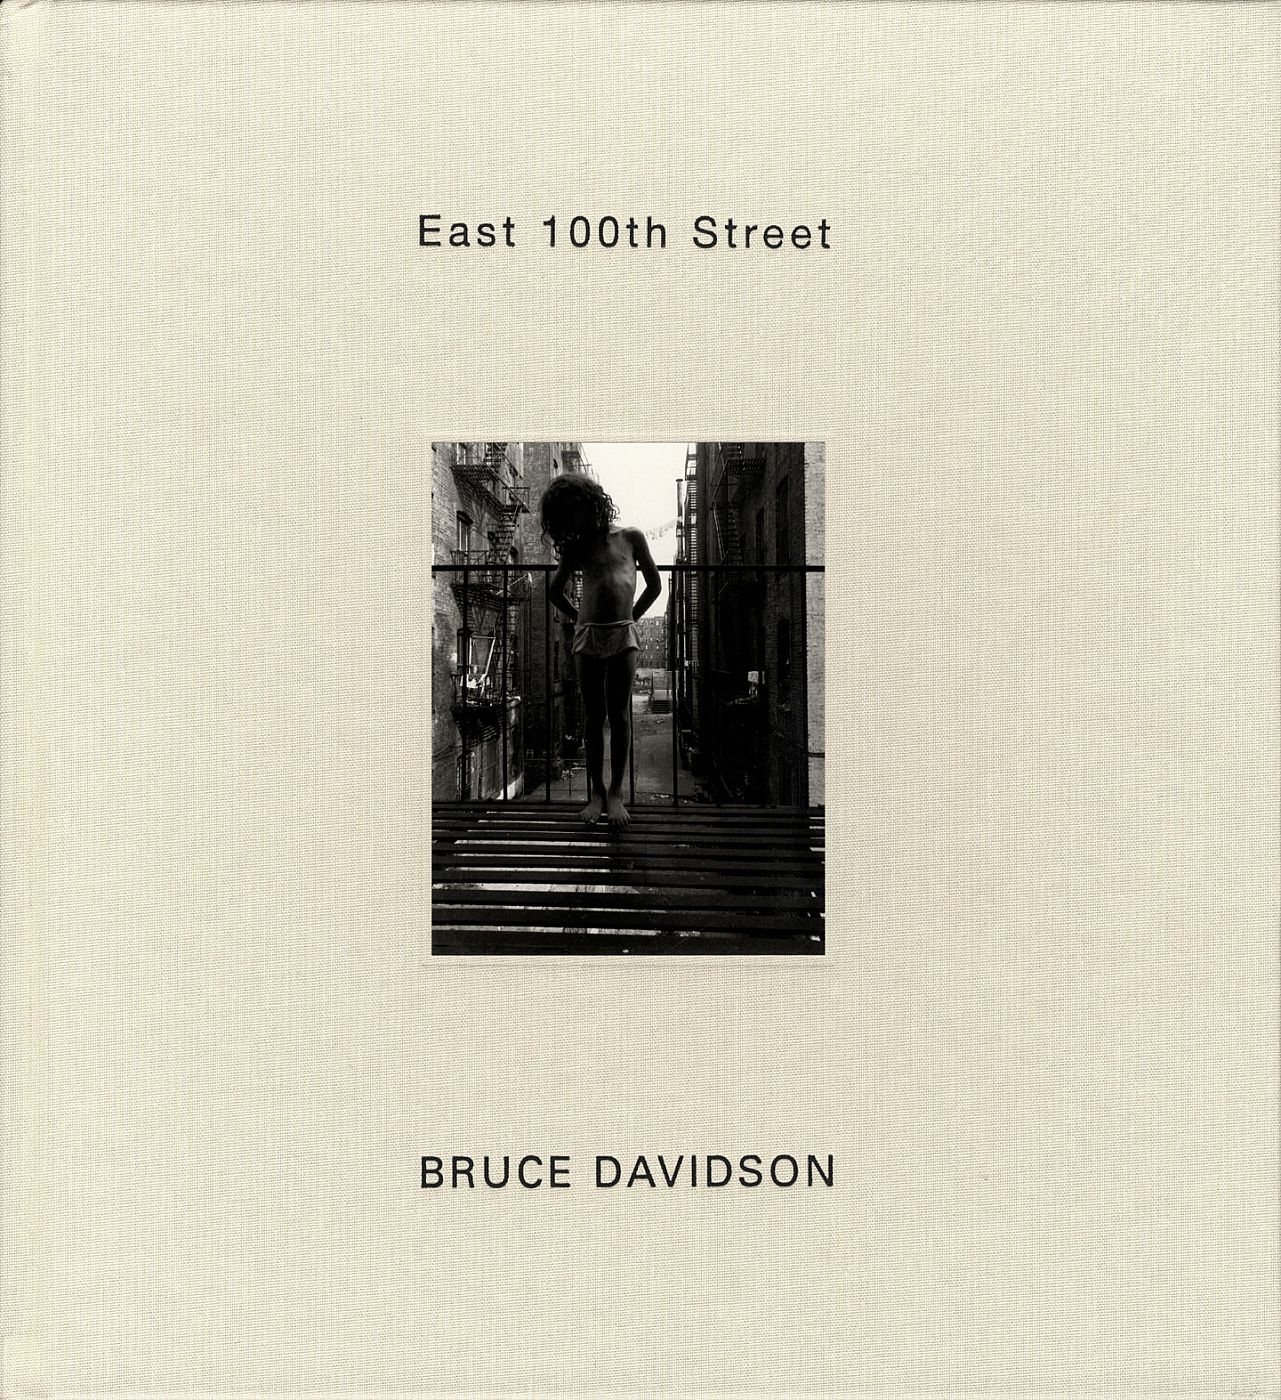 Bruce Davidson: East 100th Street (St. Ann's Press edition)